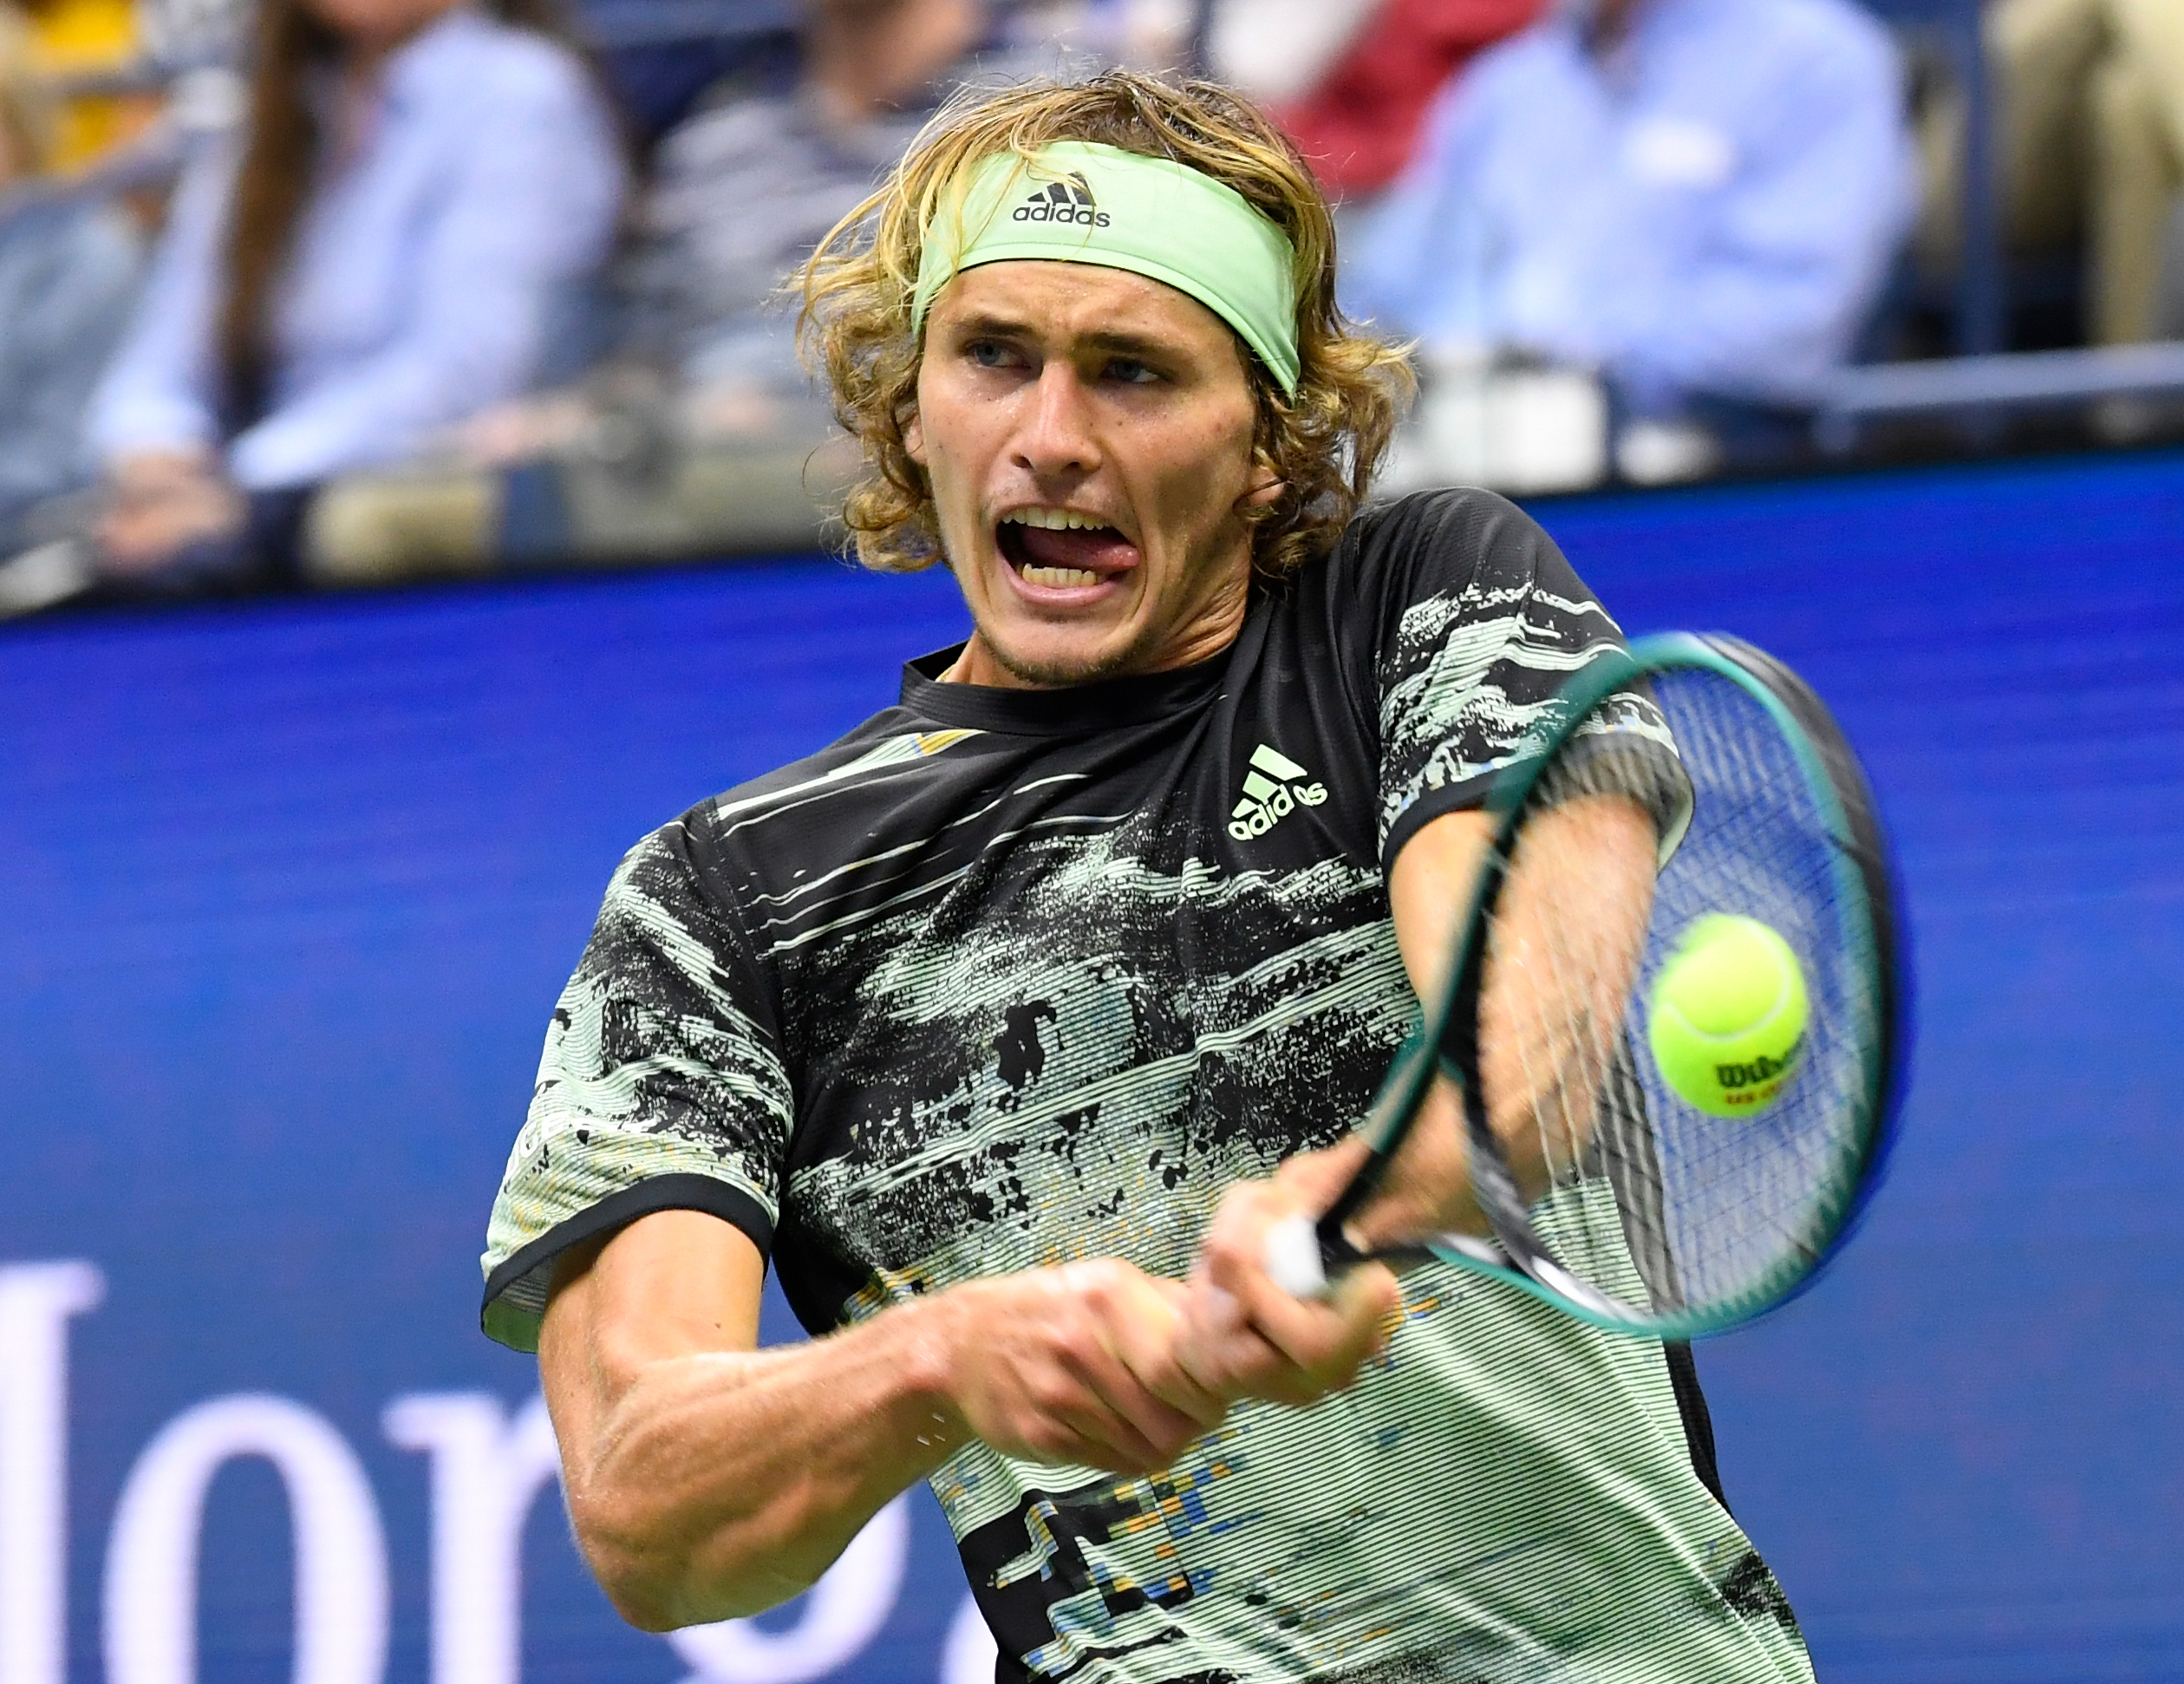 Alexander Zverev delivers remarkable comeback in U.S. Open semifinals